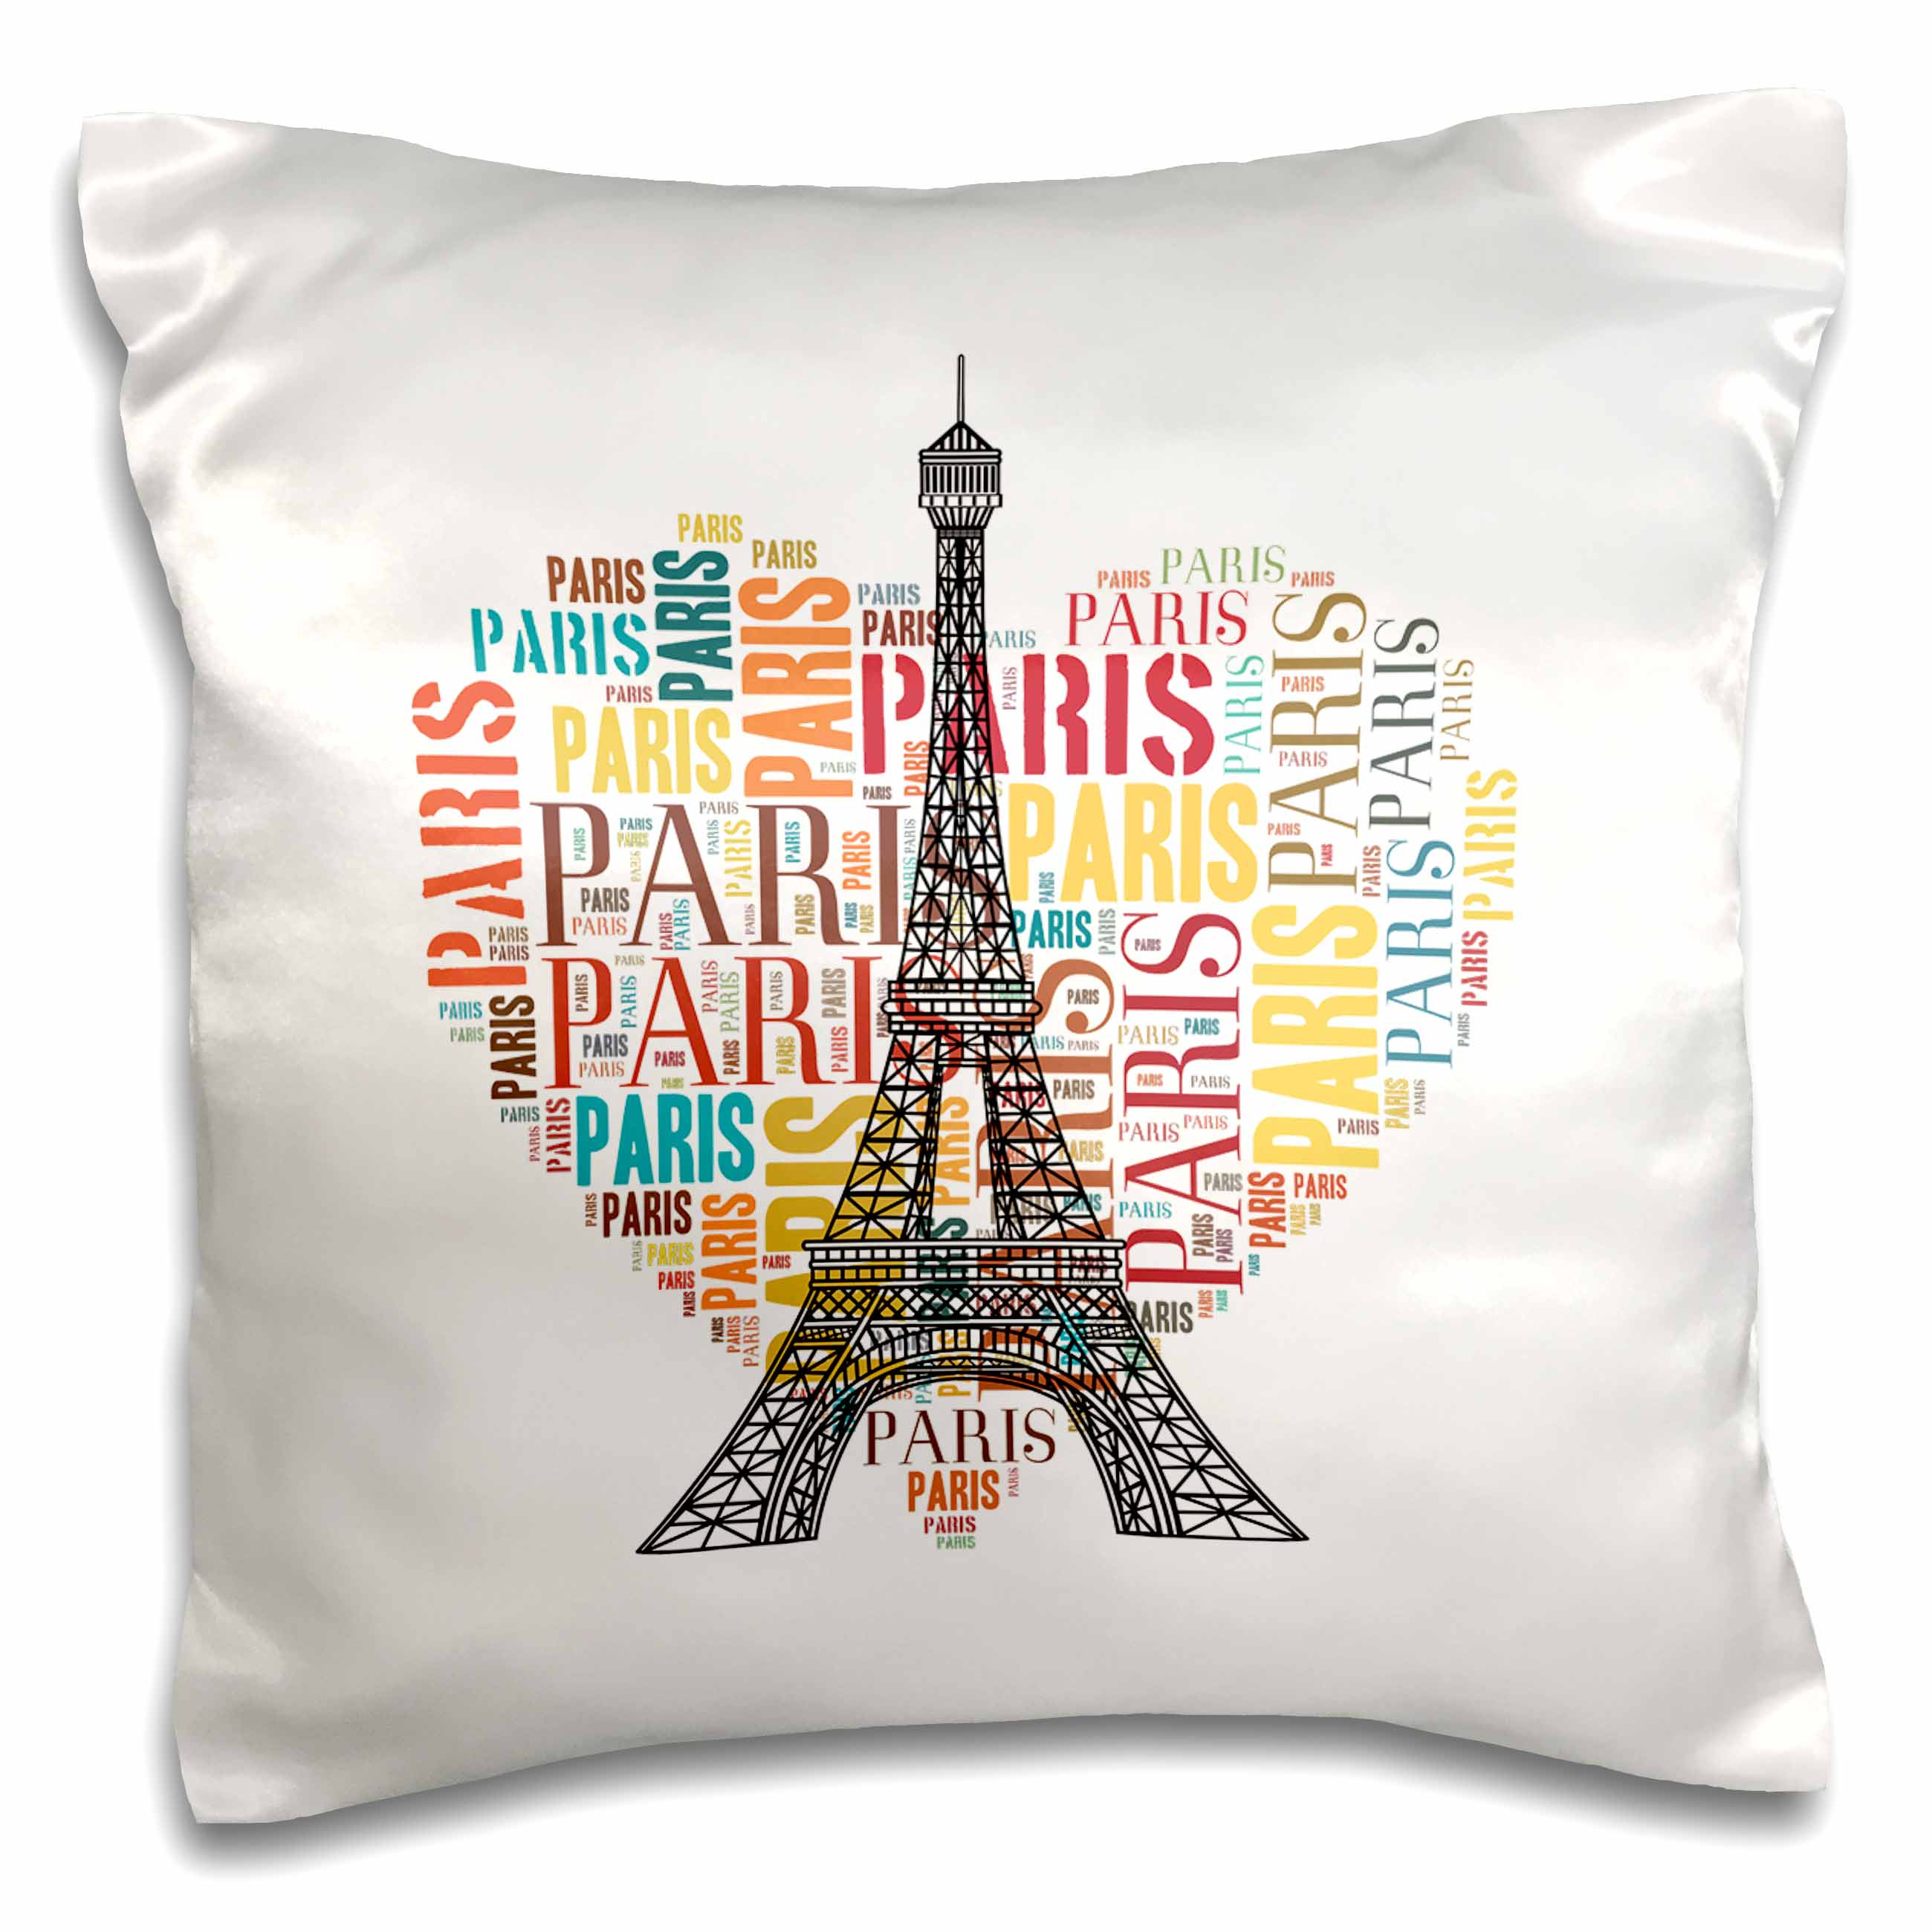 3dRose Eiffel Tower with colorful heart as word cloud design, Pillow Case, 16 by 16-inch